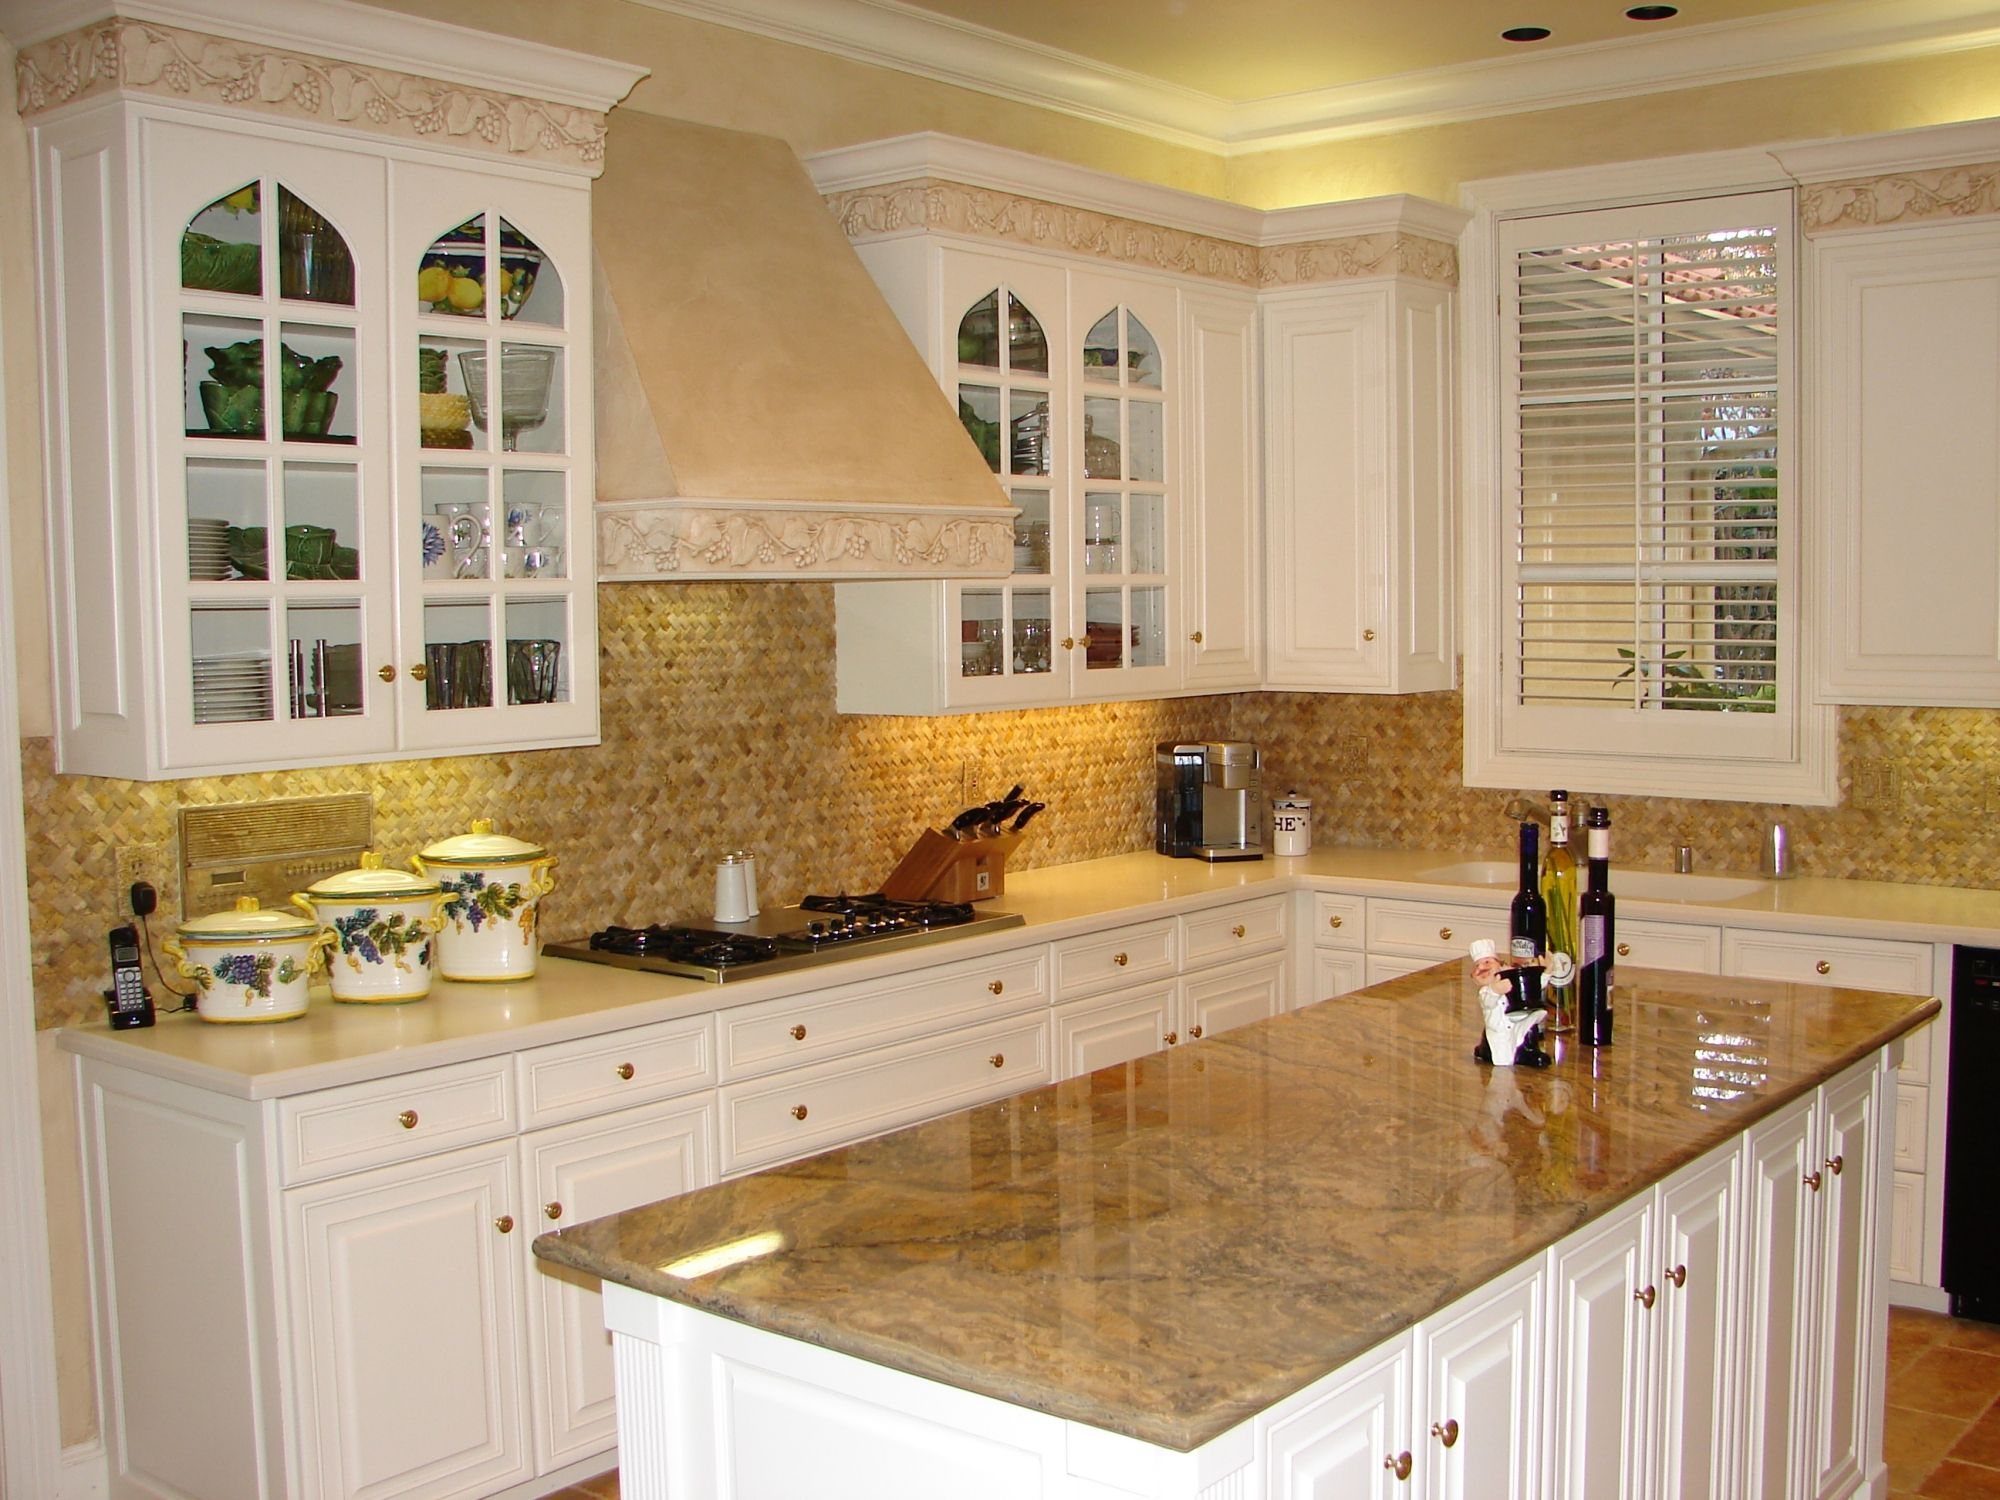 White Cabinets With Earth Tone Back Splash And Tan Granite